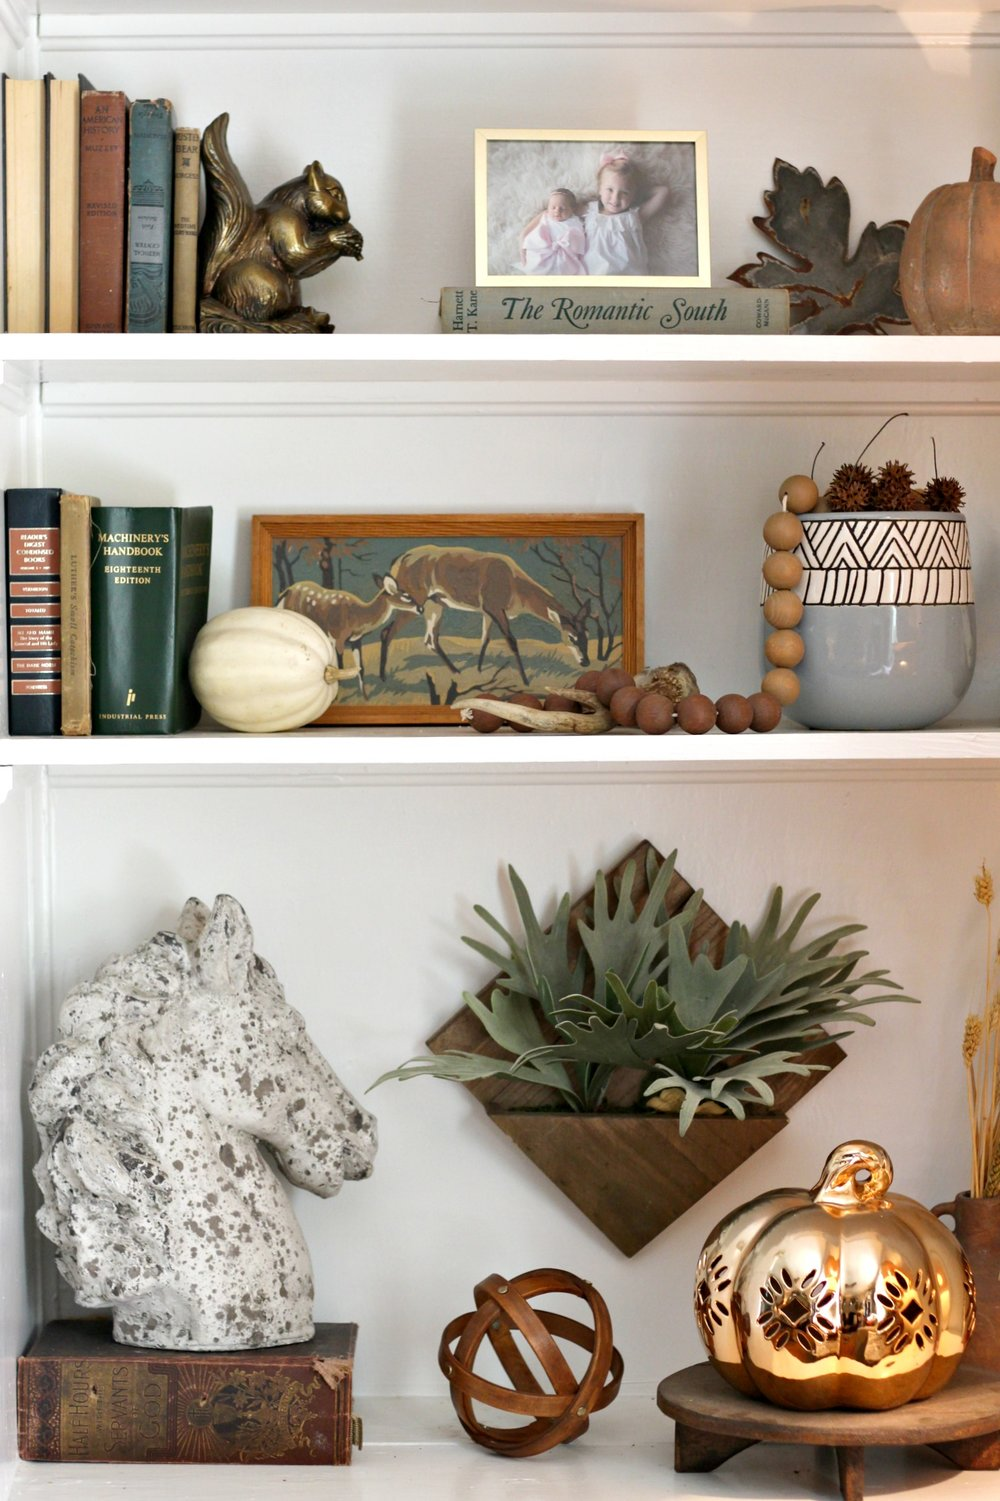 Wood sphere:  At Home    |    Copper pumpkin:  Homegoods    |   Horse statue:  Homegoods    |   Hanging faux plant:   Target (old)   |   Squirrel bookend: vintage |    Old books: vintage/thrifted |   Wood beads:  Target    |   Blue planter pot:  At Home    |    Deer paint-by-number: thrifted |  Metal leaf:  The Findery